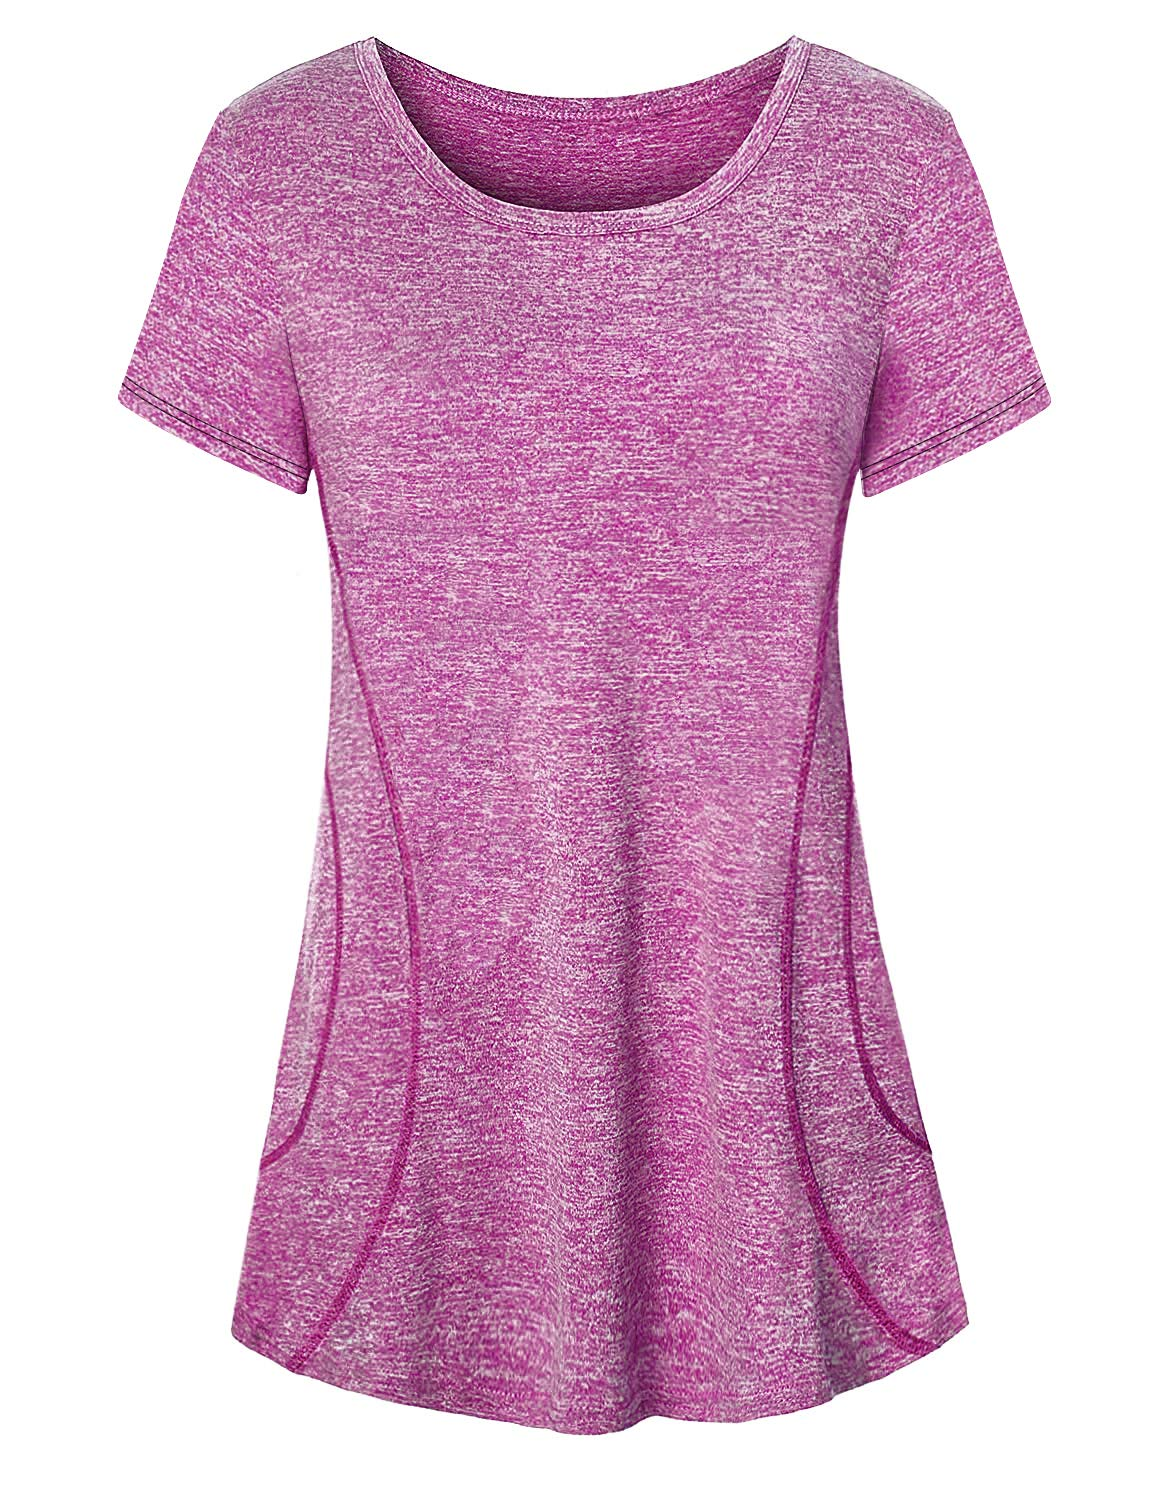 Luranee Jersey Shirts for Women, Soft Elegant Tee Breezy Decent Short Sleeve Flattering Tunic for Leggings Scoop Neck Attractive Tops Lounging Jogging Walking Everyday Activewear Purple Large by Luranee